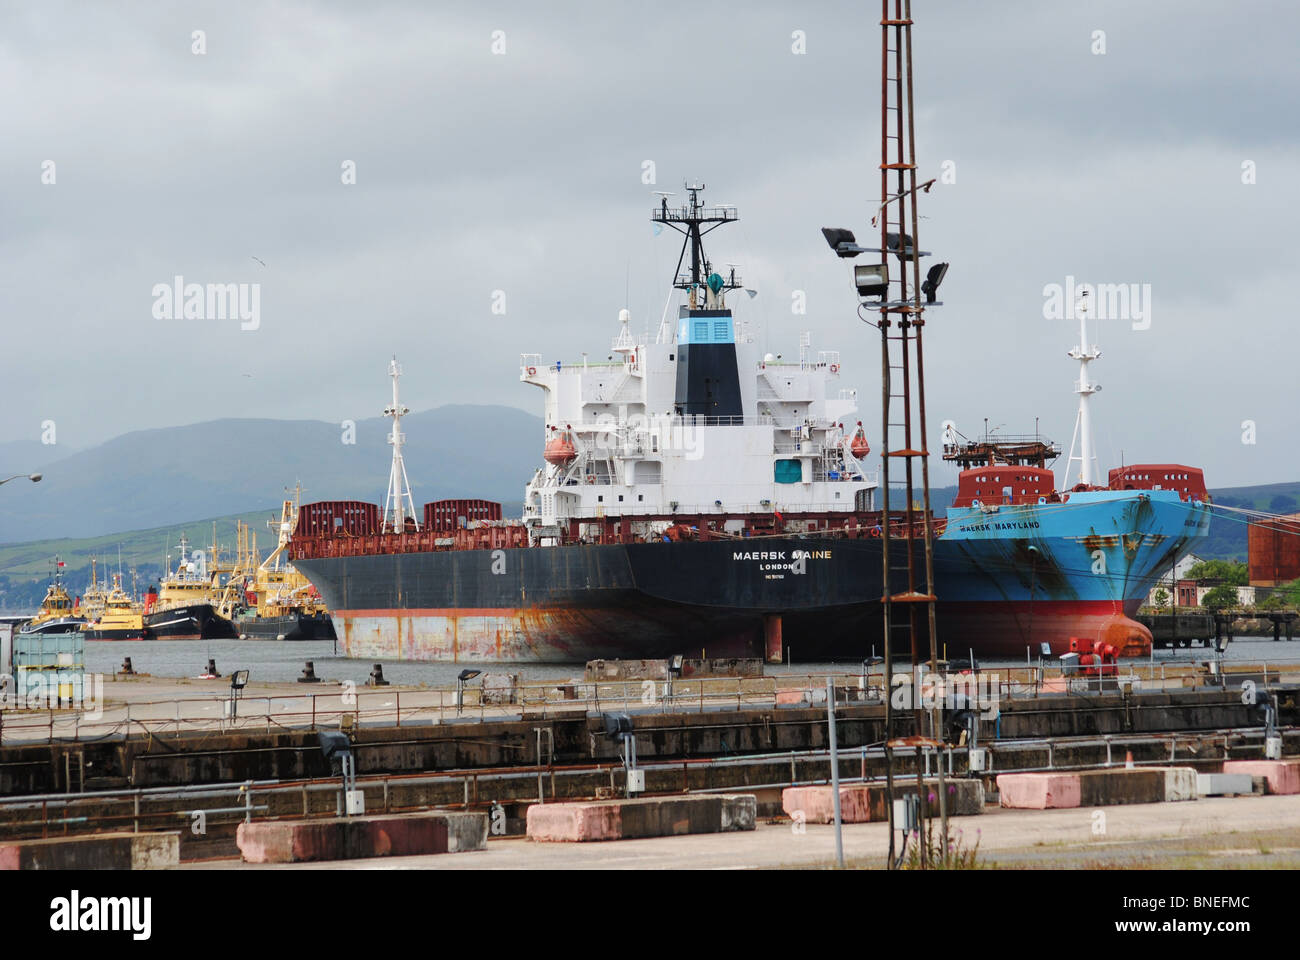 Ships in the dock. - Stock Image